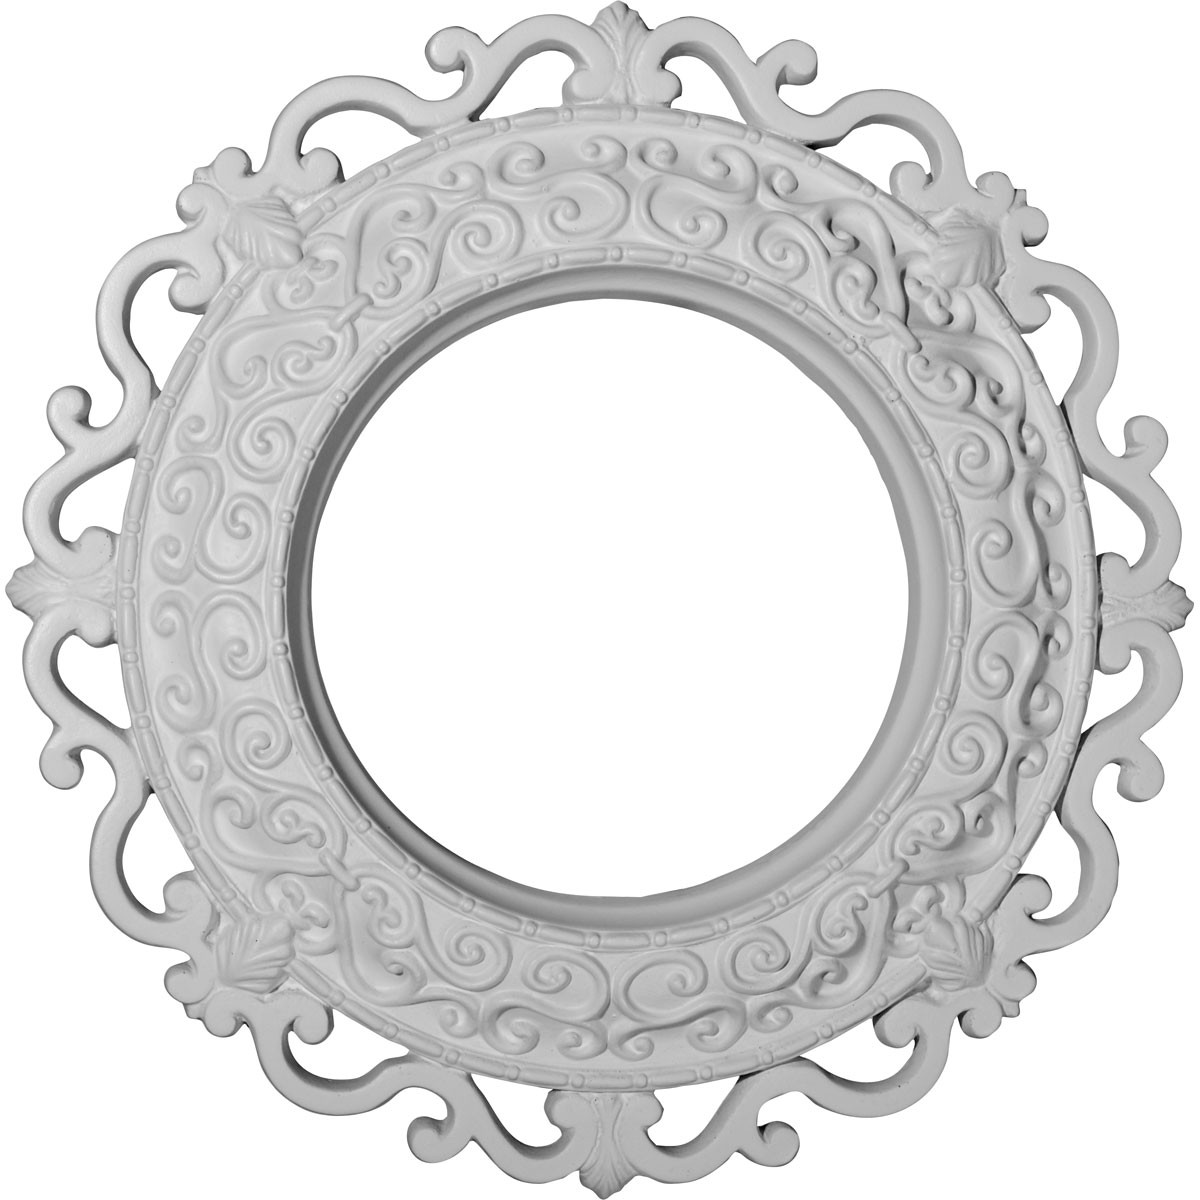 """EM-CM13OR - 13 1/4""""OD x 6 5/8""""ID x 1 1/8""""P Orrington Ceiling Medallion (Fits Canopies up to 6 5/8"""")"""